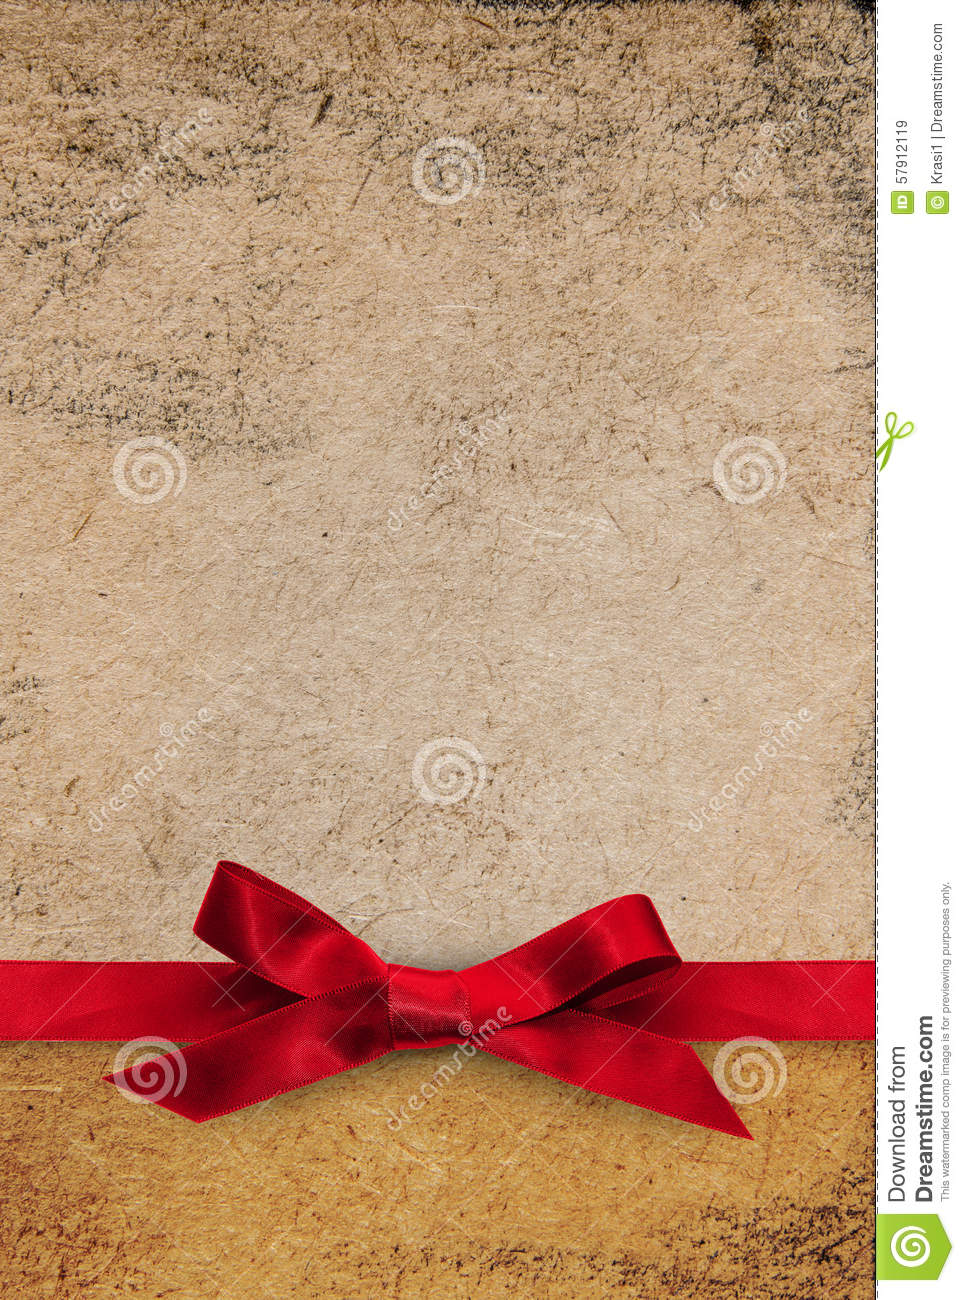 Red Ribbon Bow On Textured Paper Background